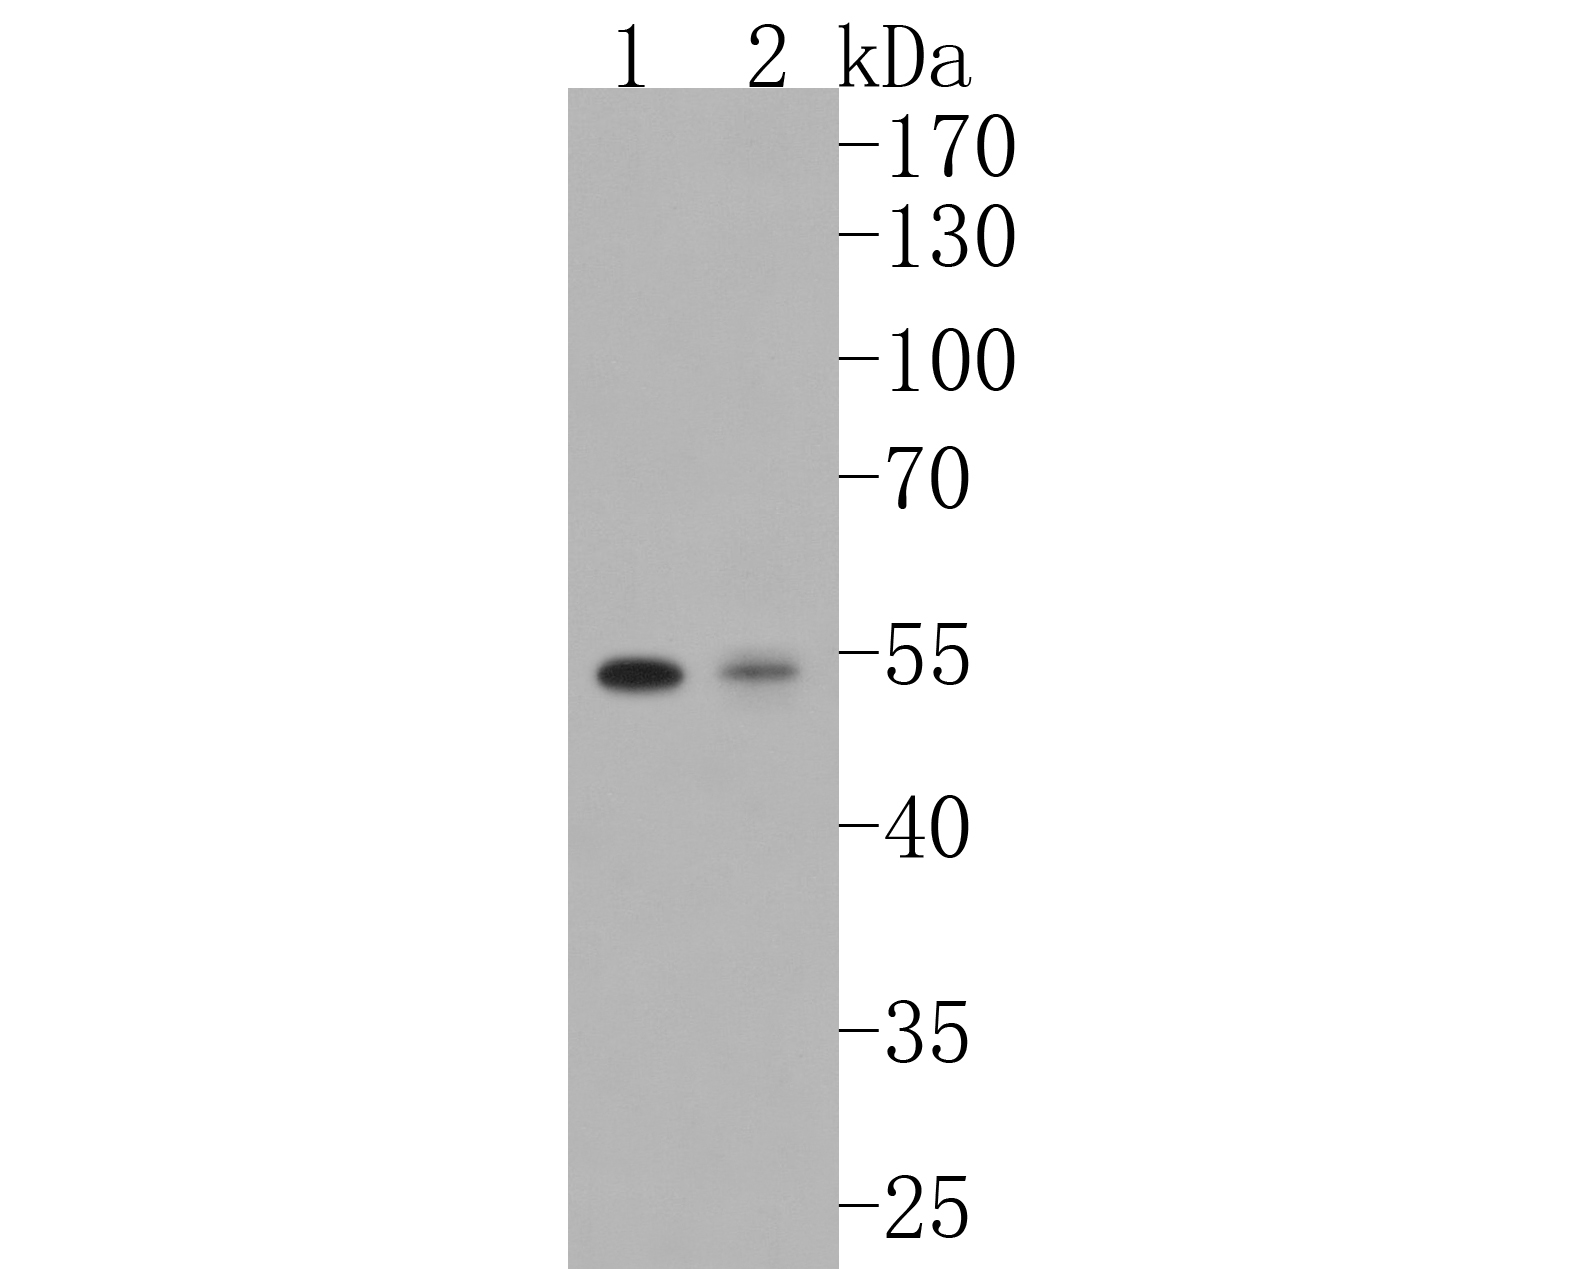 Western blot analysis of MiTF on PC-12 cells lysates using anti-MiTF antibody at 1/1,000 dilution.